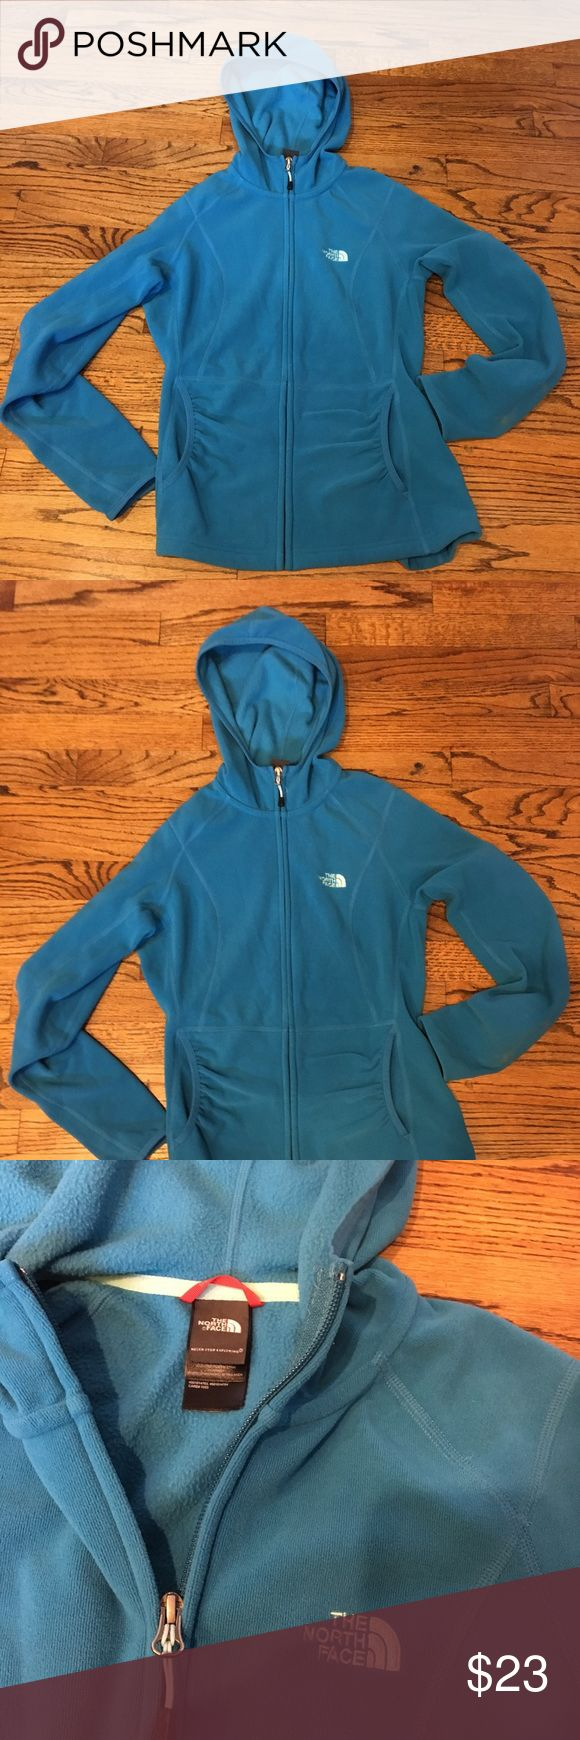 The North Face women's zip up, good condition Amazing color and great condition. Cute style with tigger waist. Light Fleece inside, and sweatshirt like material outside. Front zipper and hood, both in great condition. The North Face Jackets & Coats